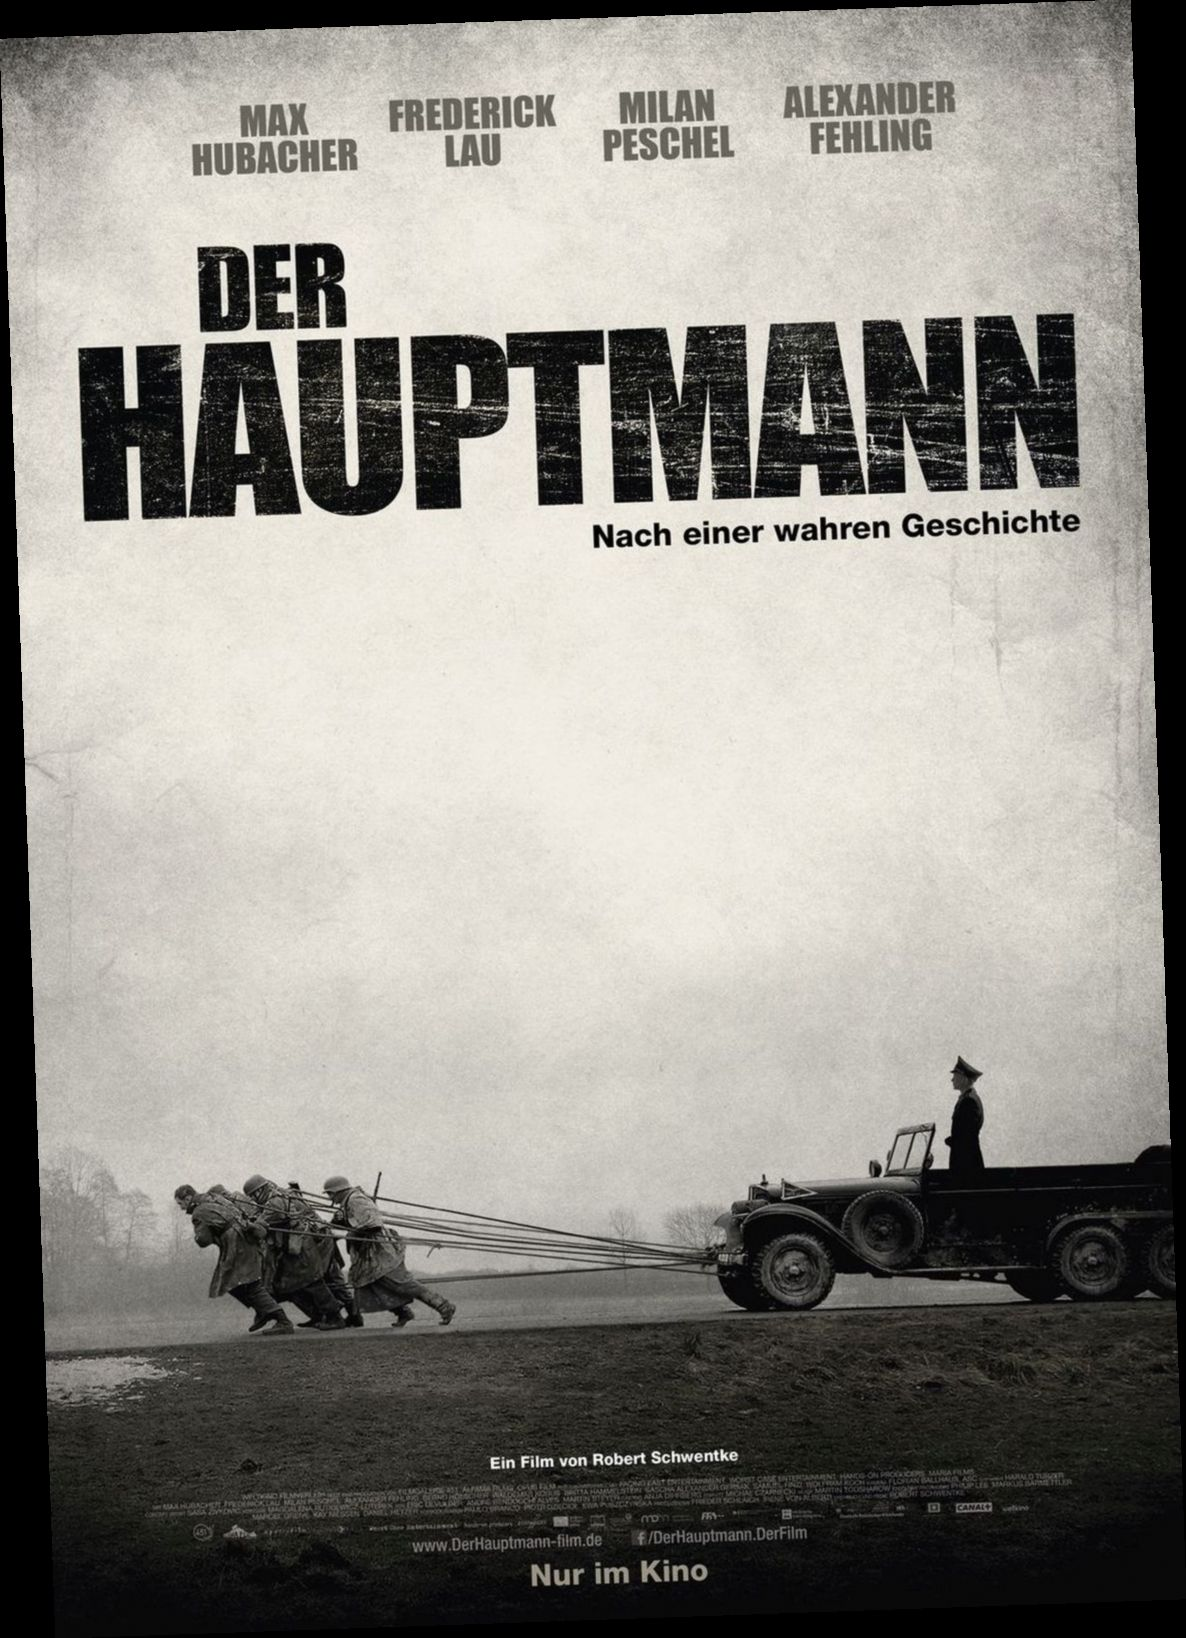 Der Hauptmann Film Completo Hd Streaming Italiano German Movies Streaming Movies Online Film